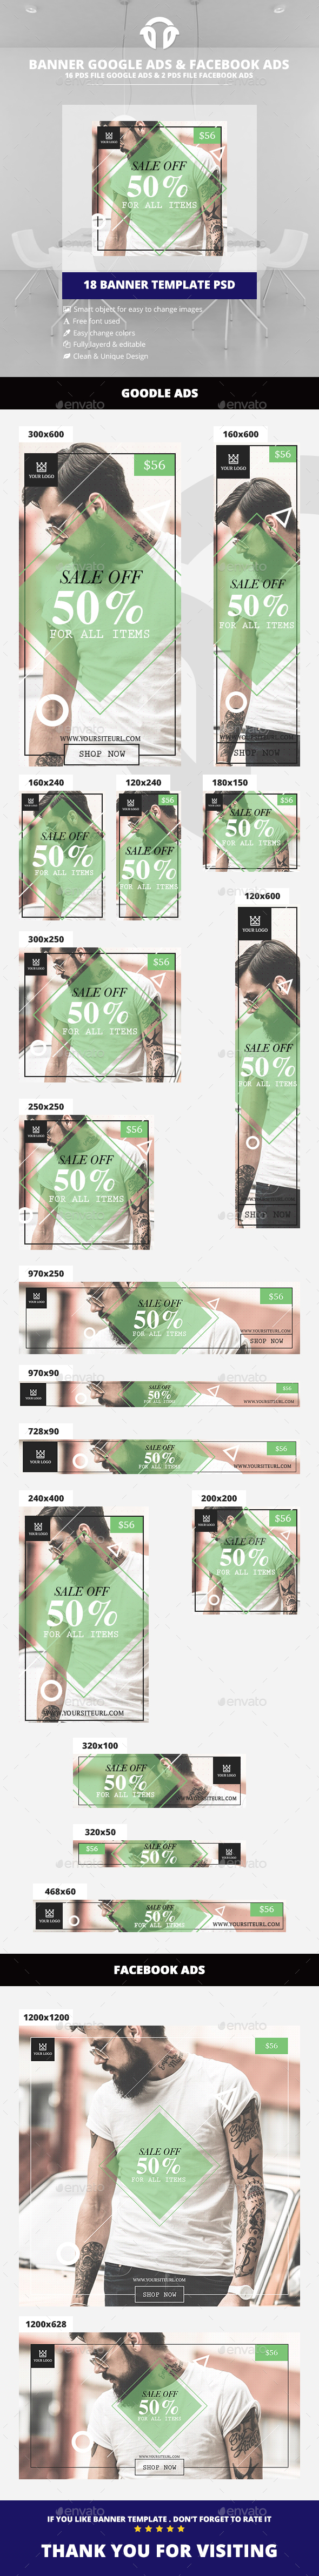 Vintage Fashion Ads - Banners & Ads Web Elements